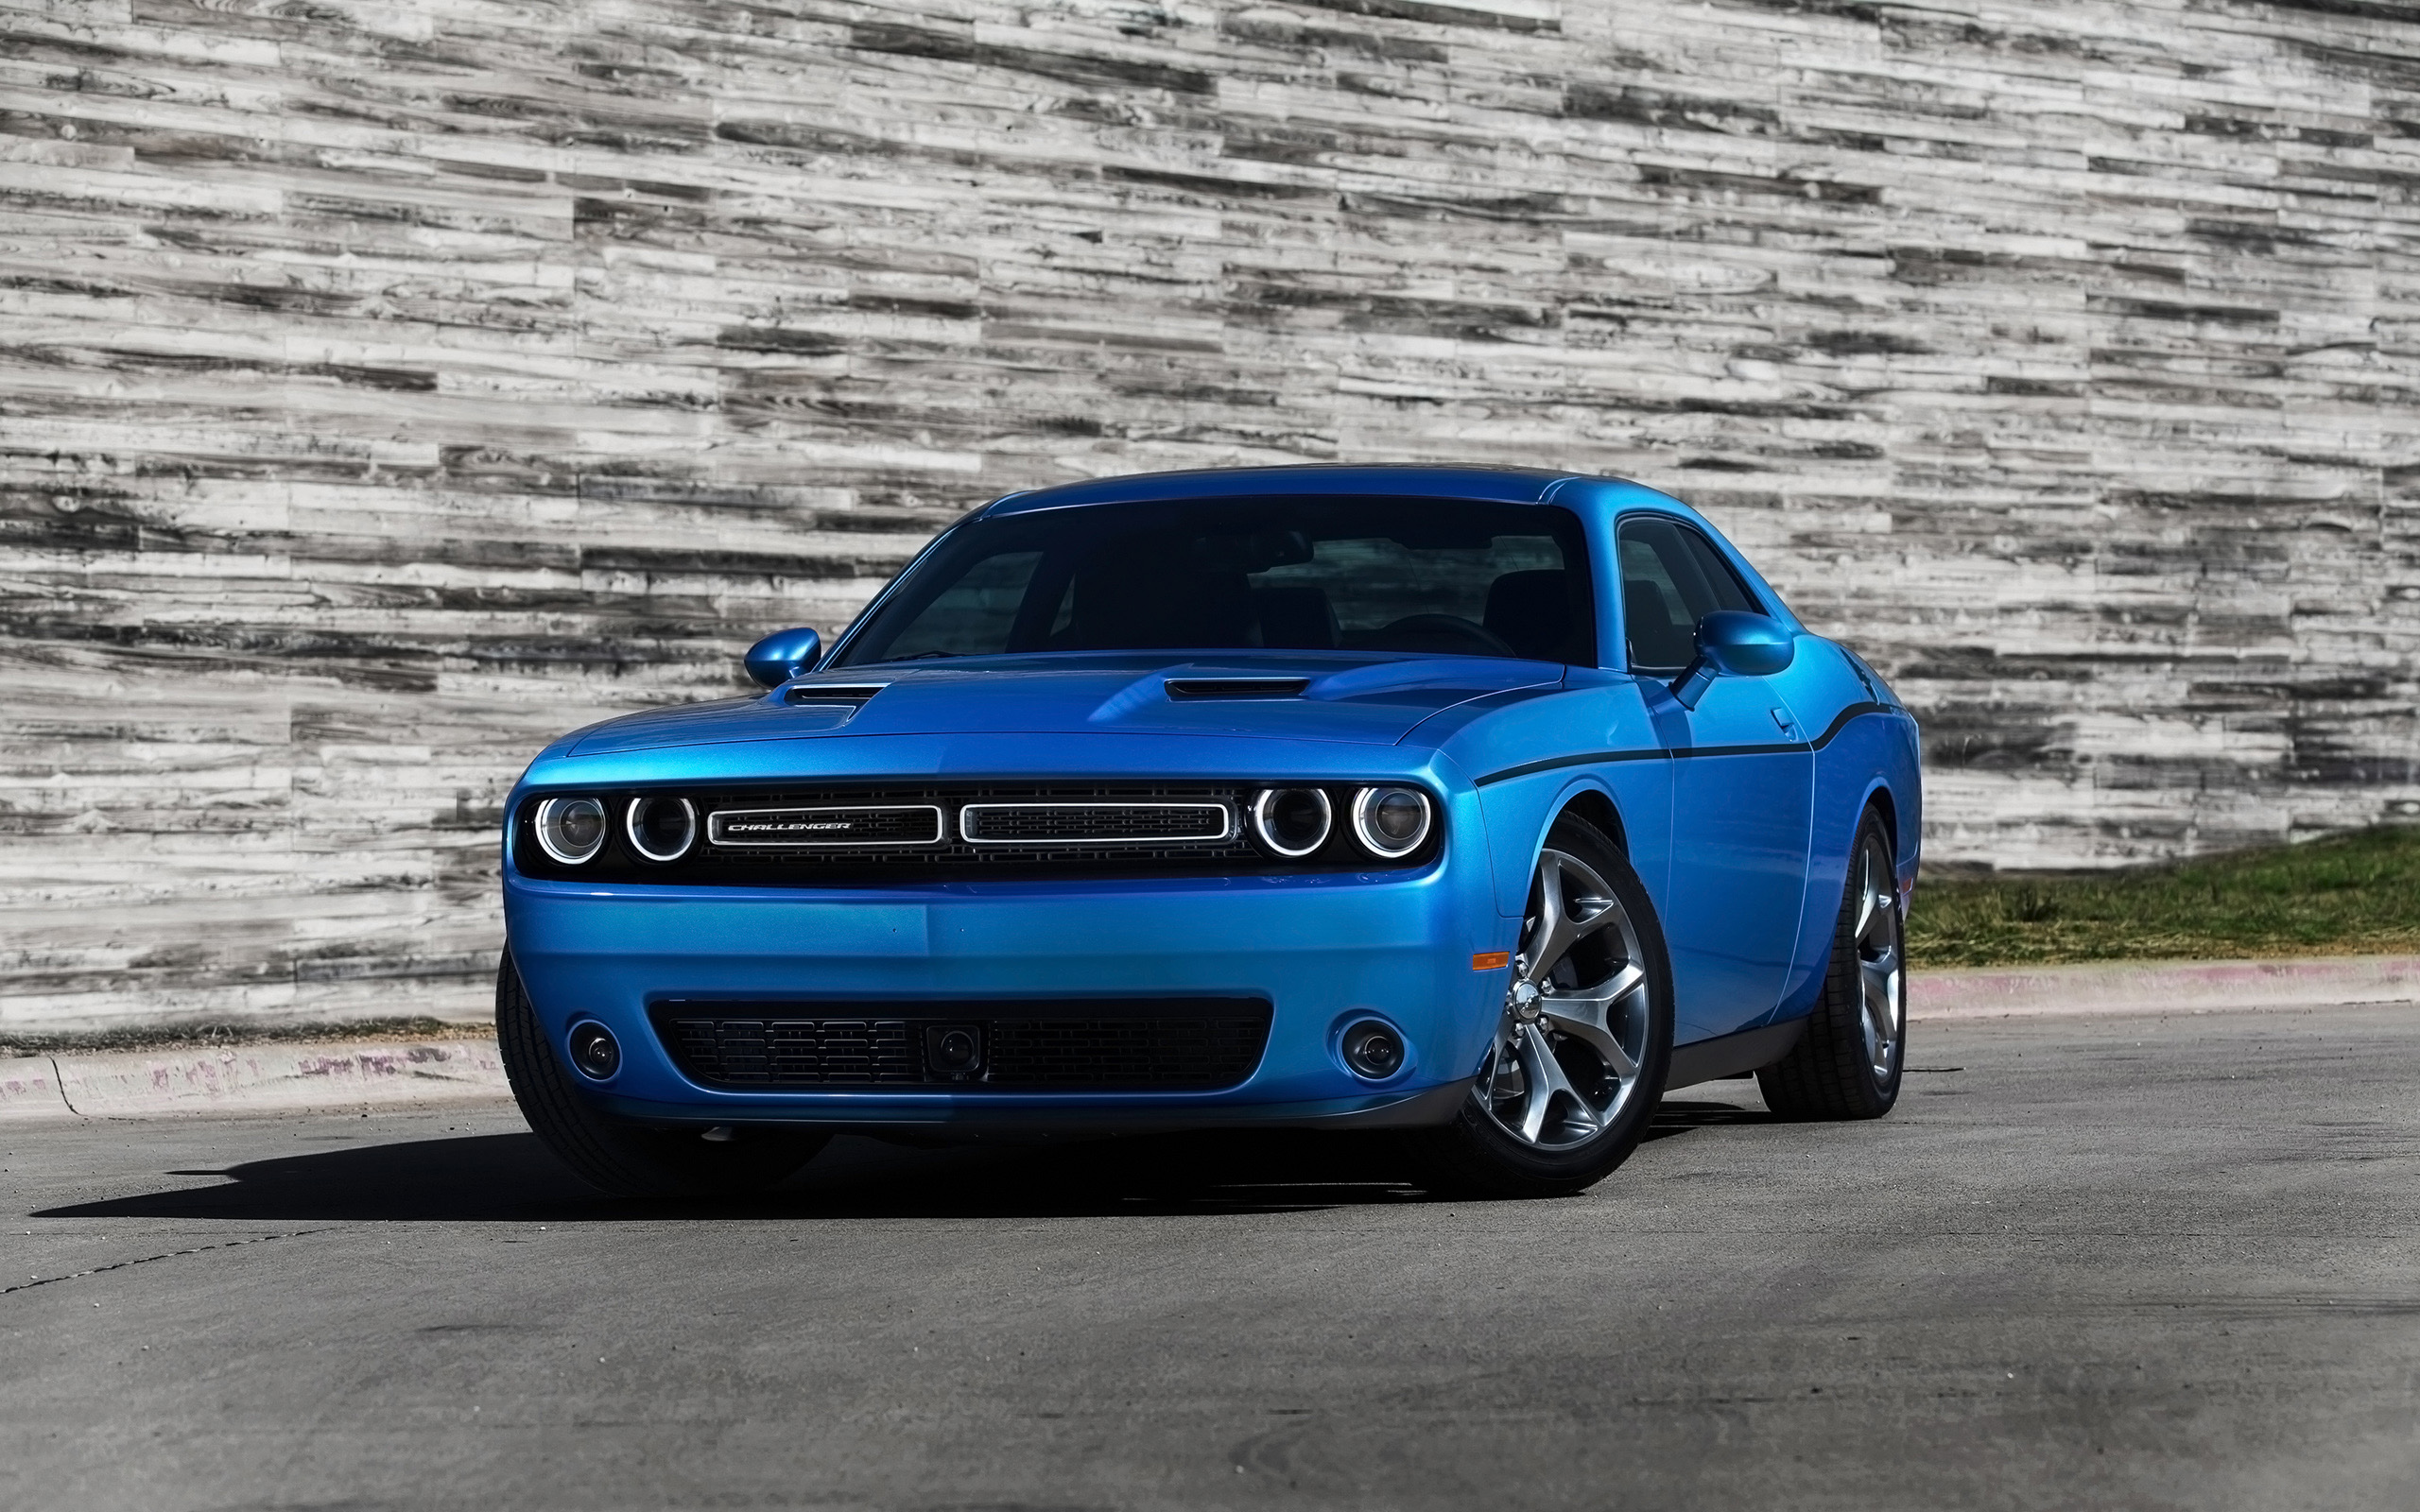 2015 Dodge Challenger Blue Wallpaper HD Car Wallpapers 2560x1600